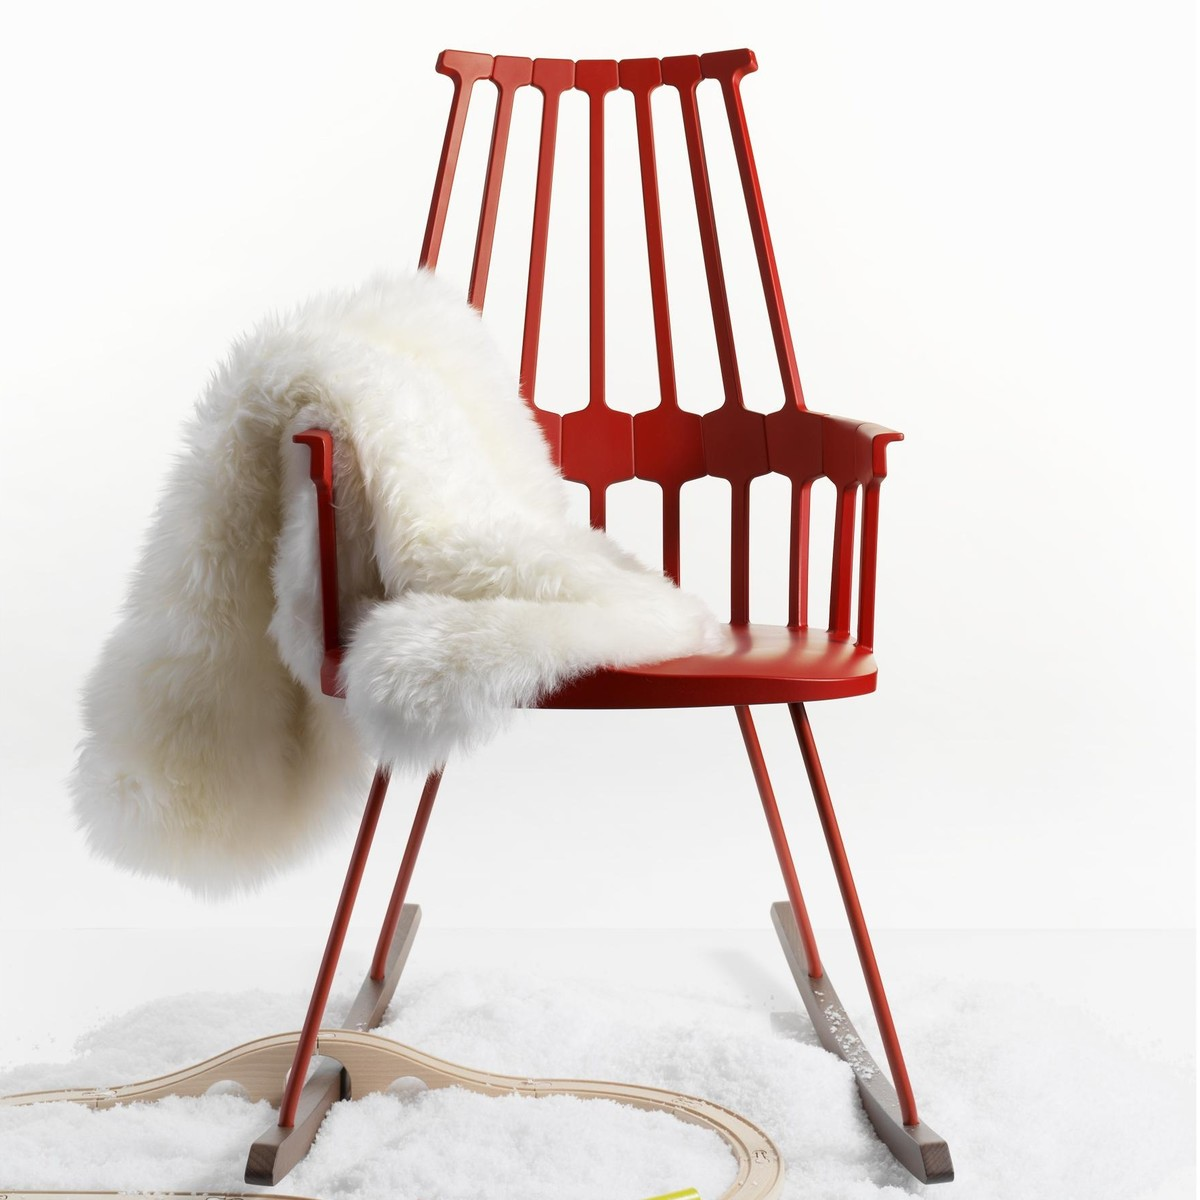 Charming Modern Rocking Chairs   Where Innovation Meets Tradition Nice Design